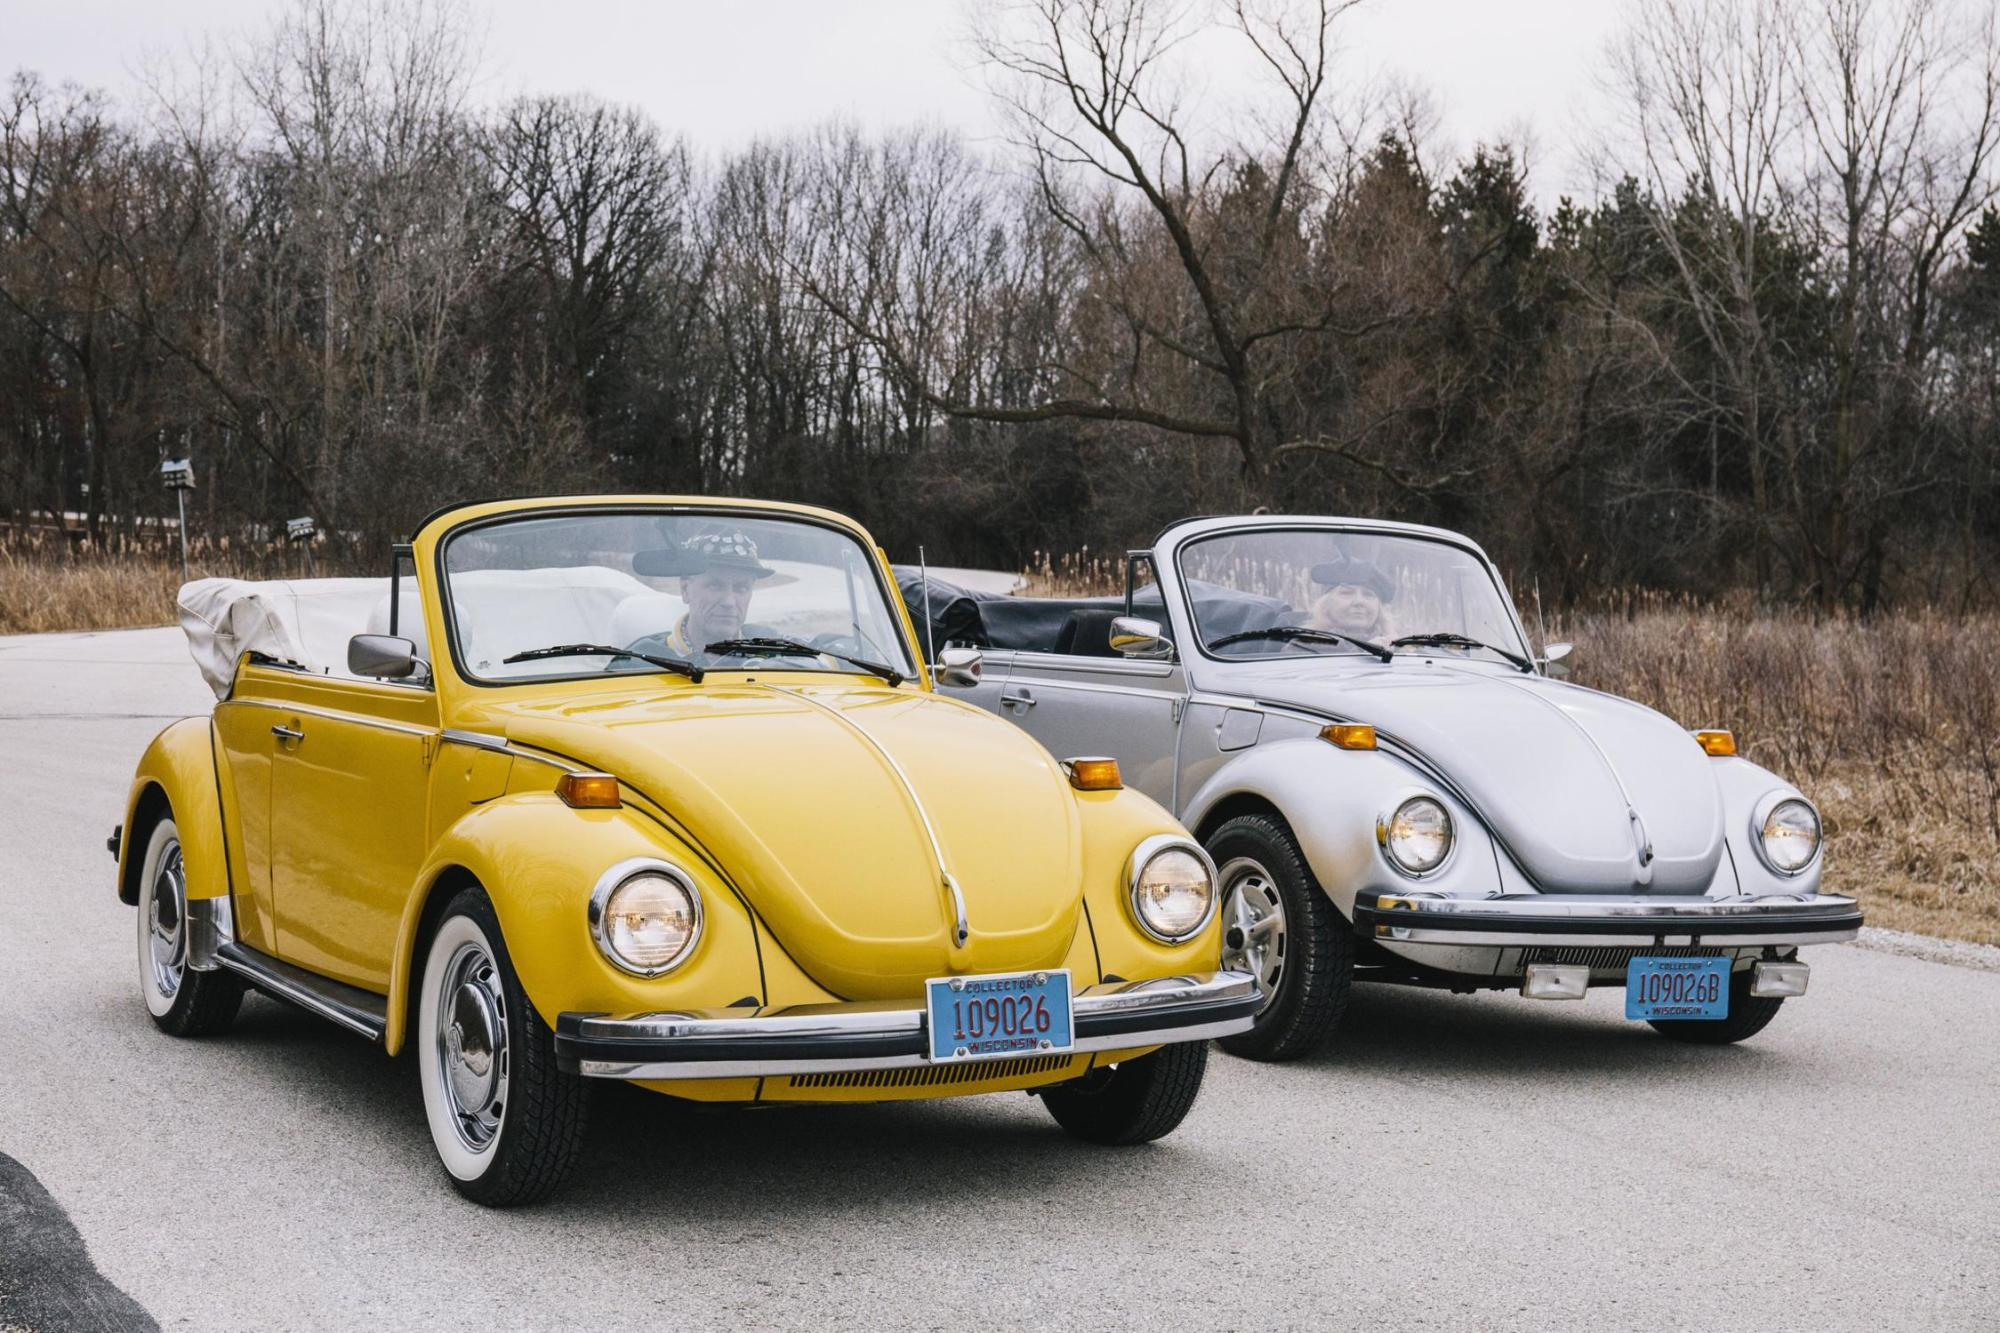 hight resolution of the jaecks with their 1978 and 1979 beetle convertibles